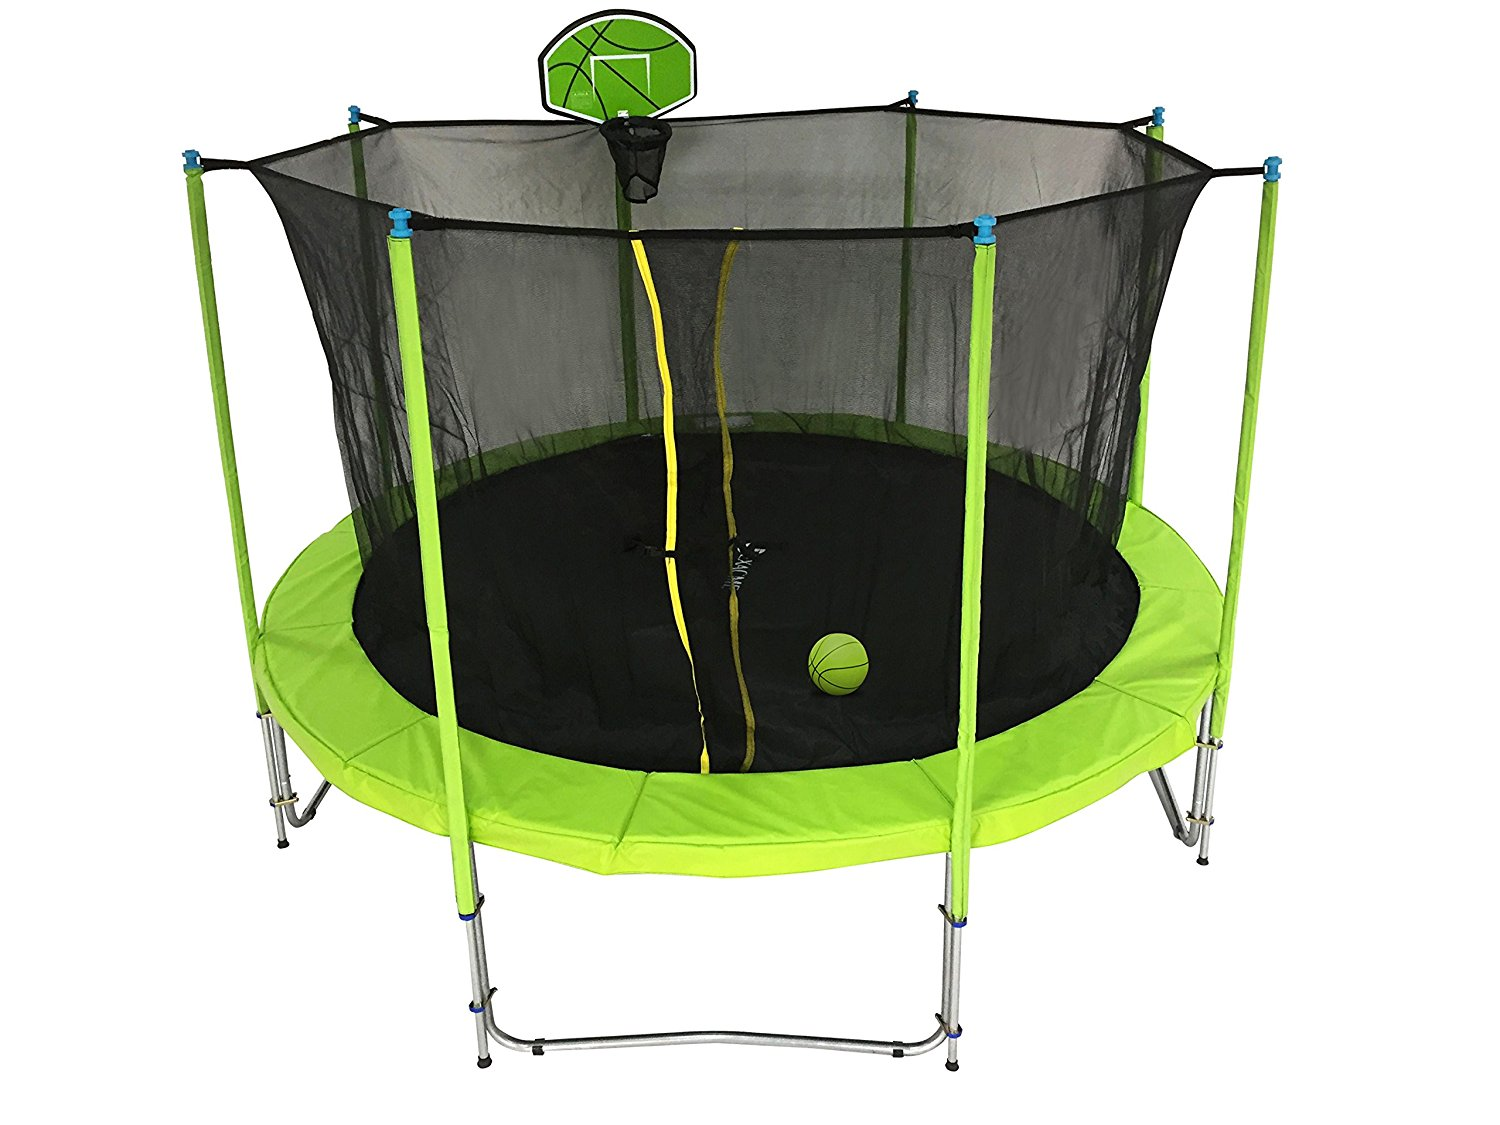 ExacMe Trampoline with Safety Pad, Inner Enclosure Net and Ladder Combo w/ Basketball Hoop and Ball; C-Series, Lime Green (12 Foot, 15 Foot)